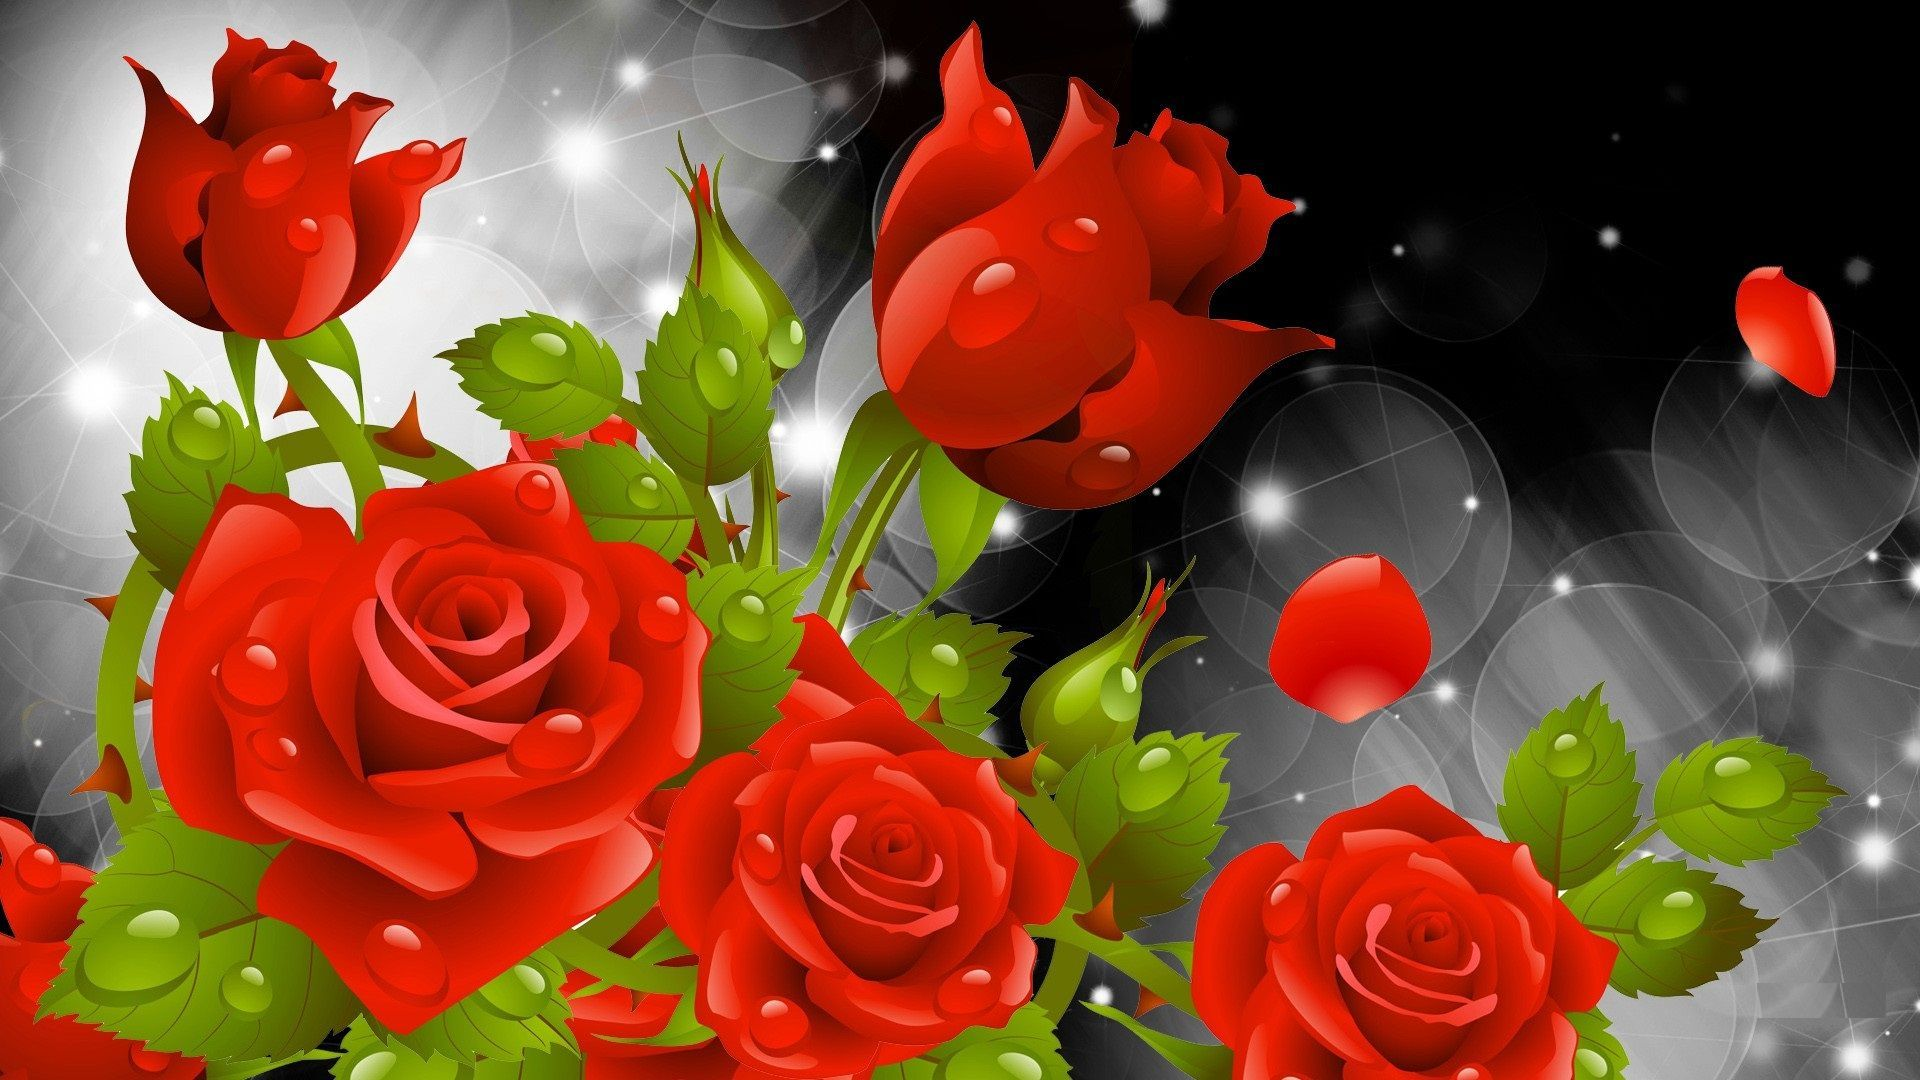 Backgrounds Rose Flower Hd Cave On Red Images Of Smartphone | Full ...